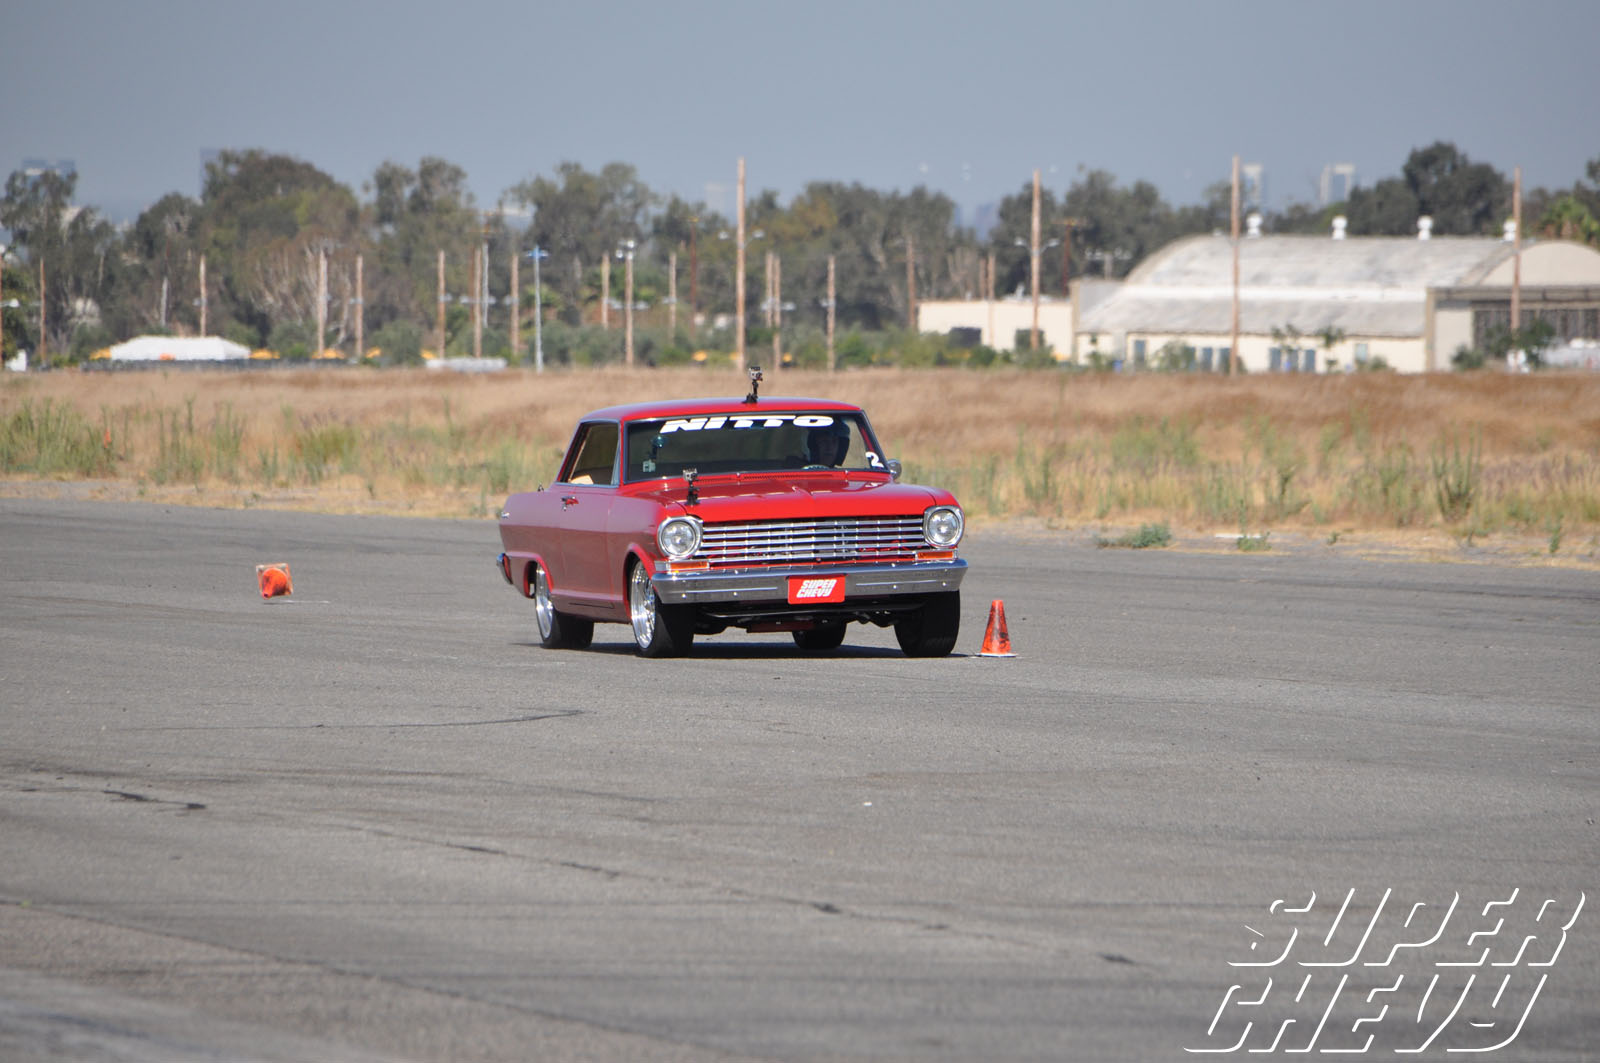 Sucp_1009_021_o 2010_super_chevy_suspension_and_handling challenge Event